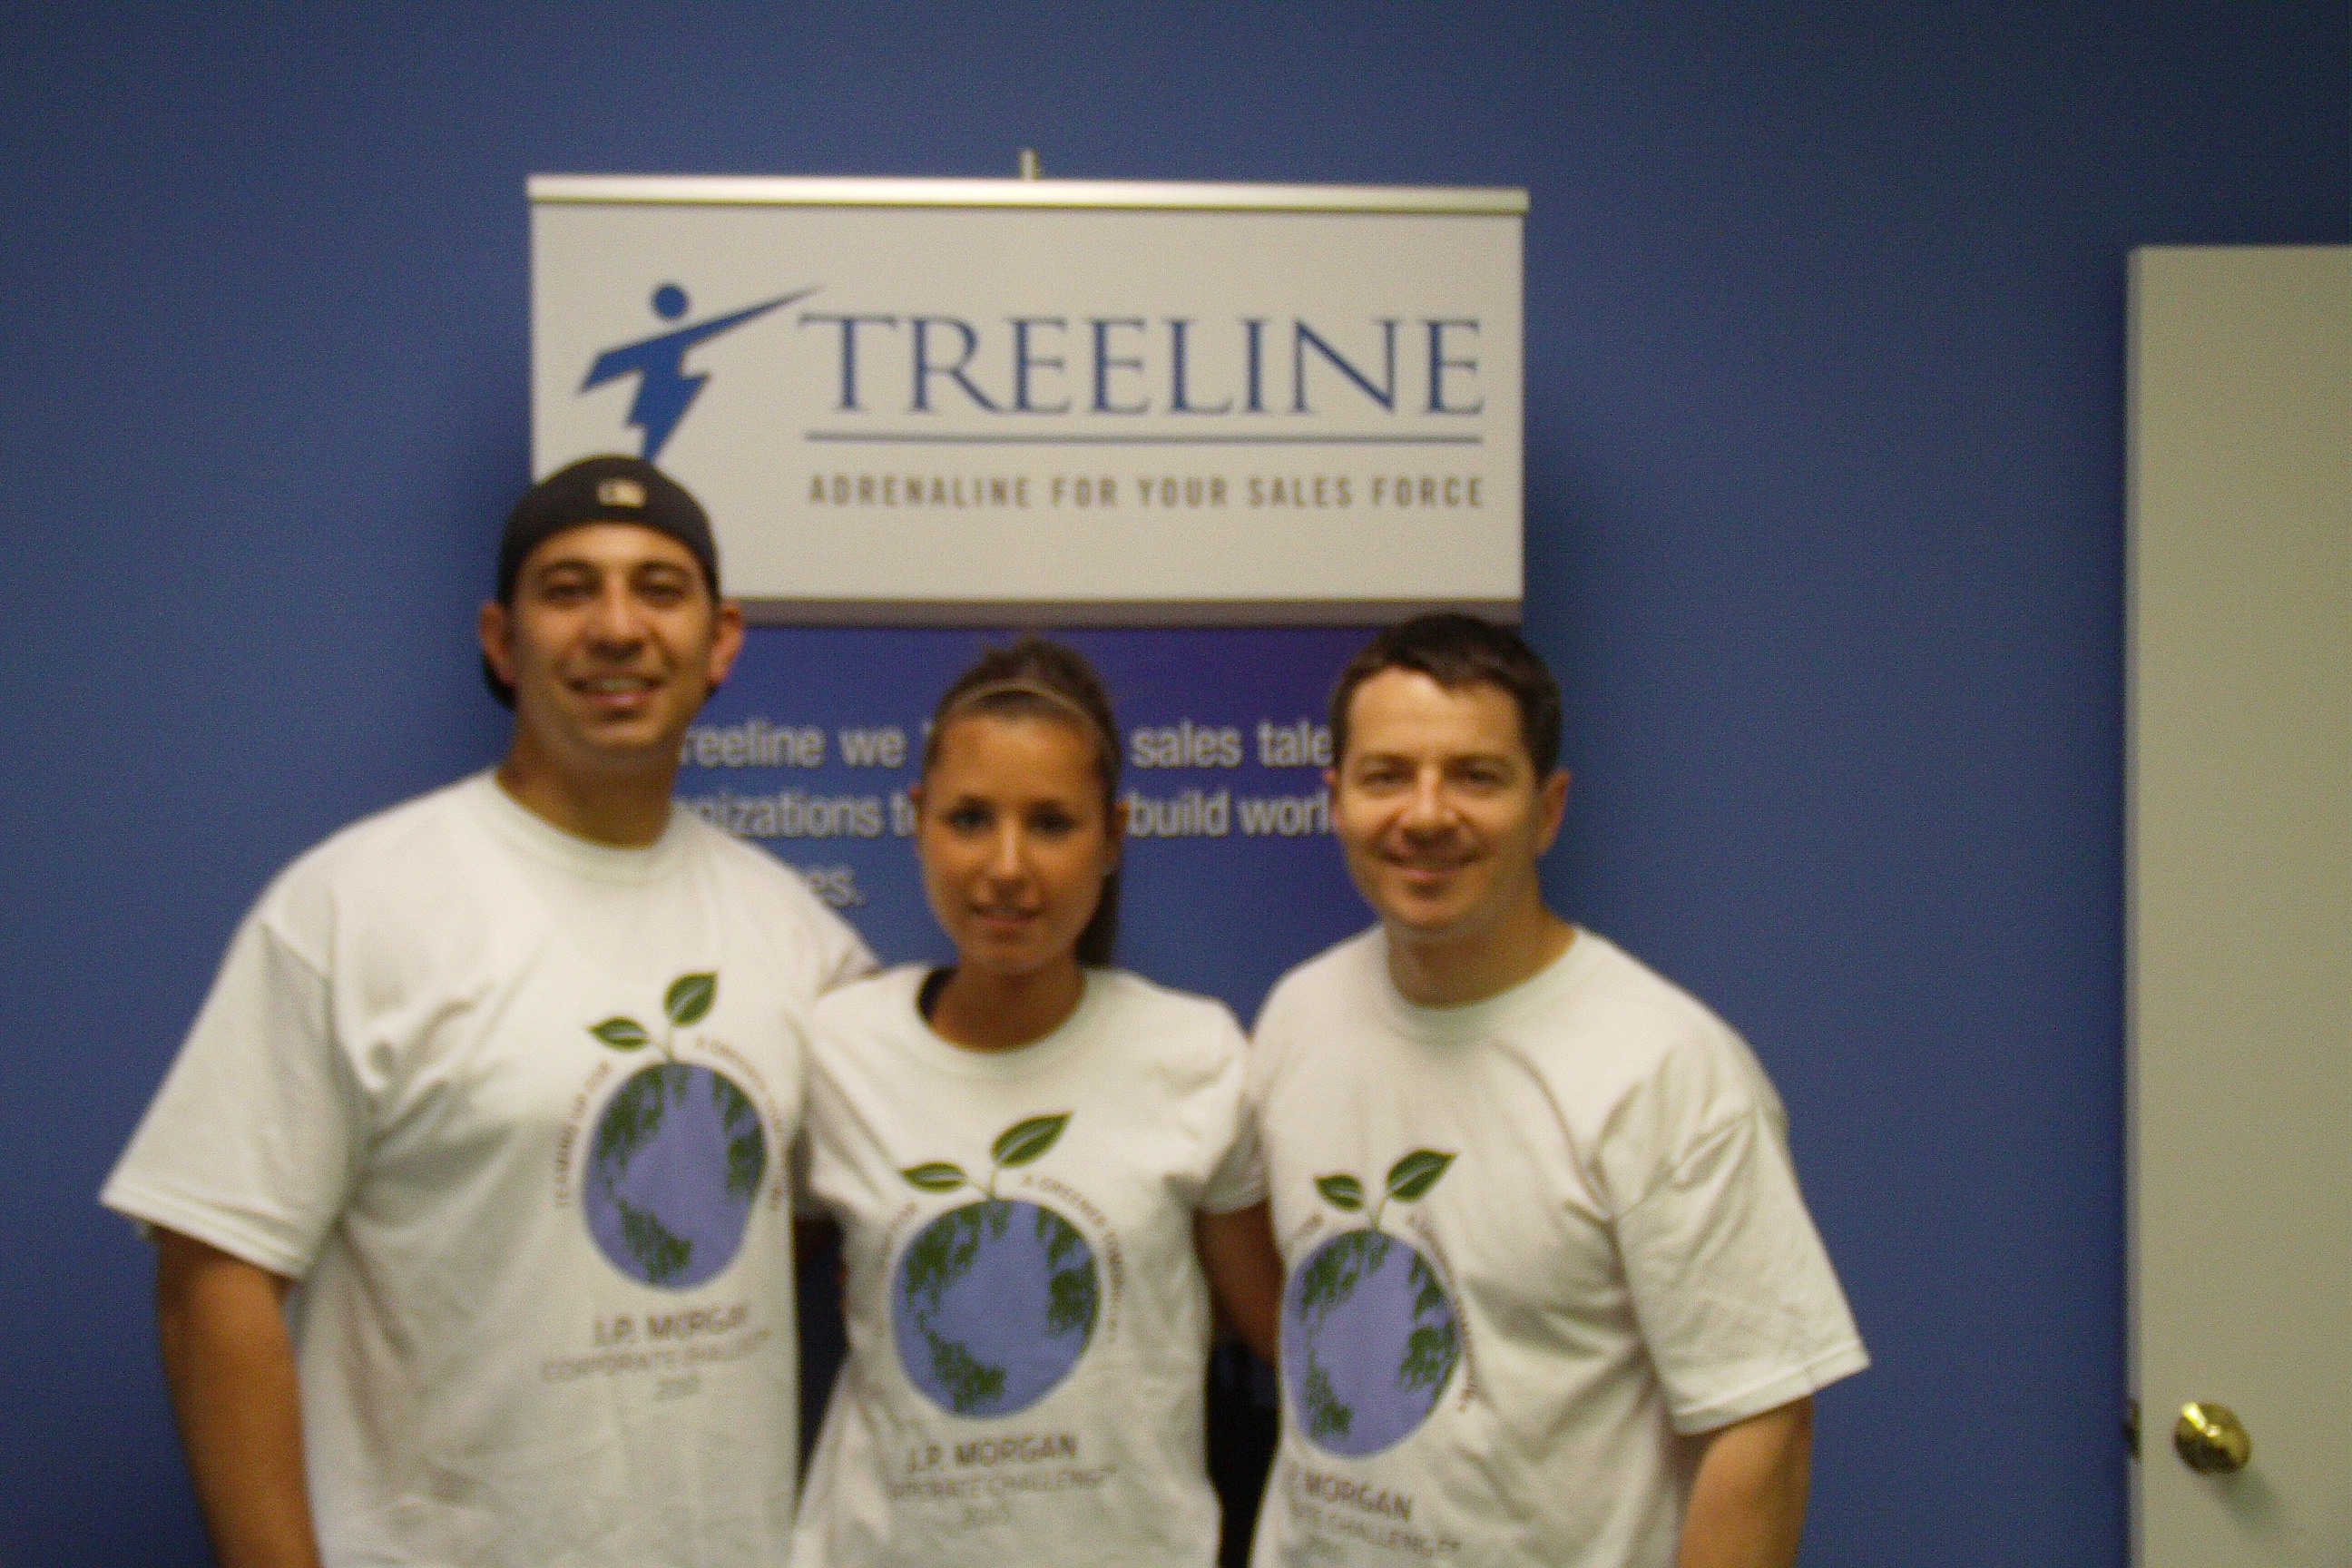 Treeline Inc. runs the JP Morgan Corporate Challenge Race